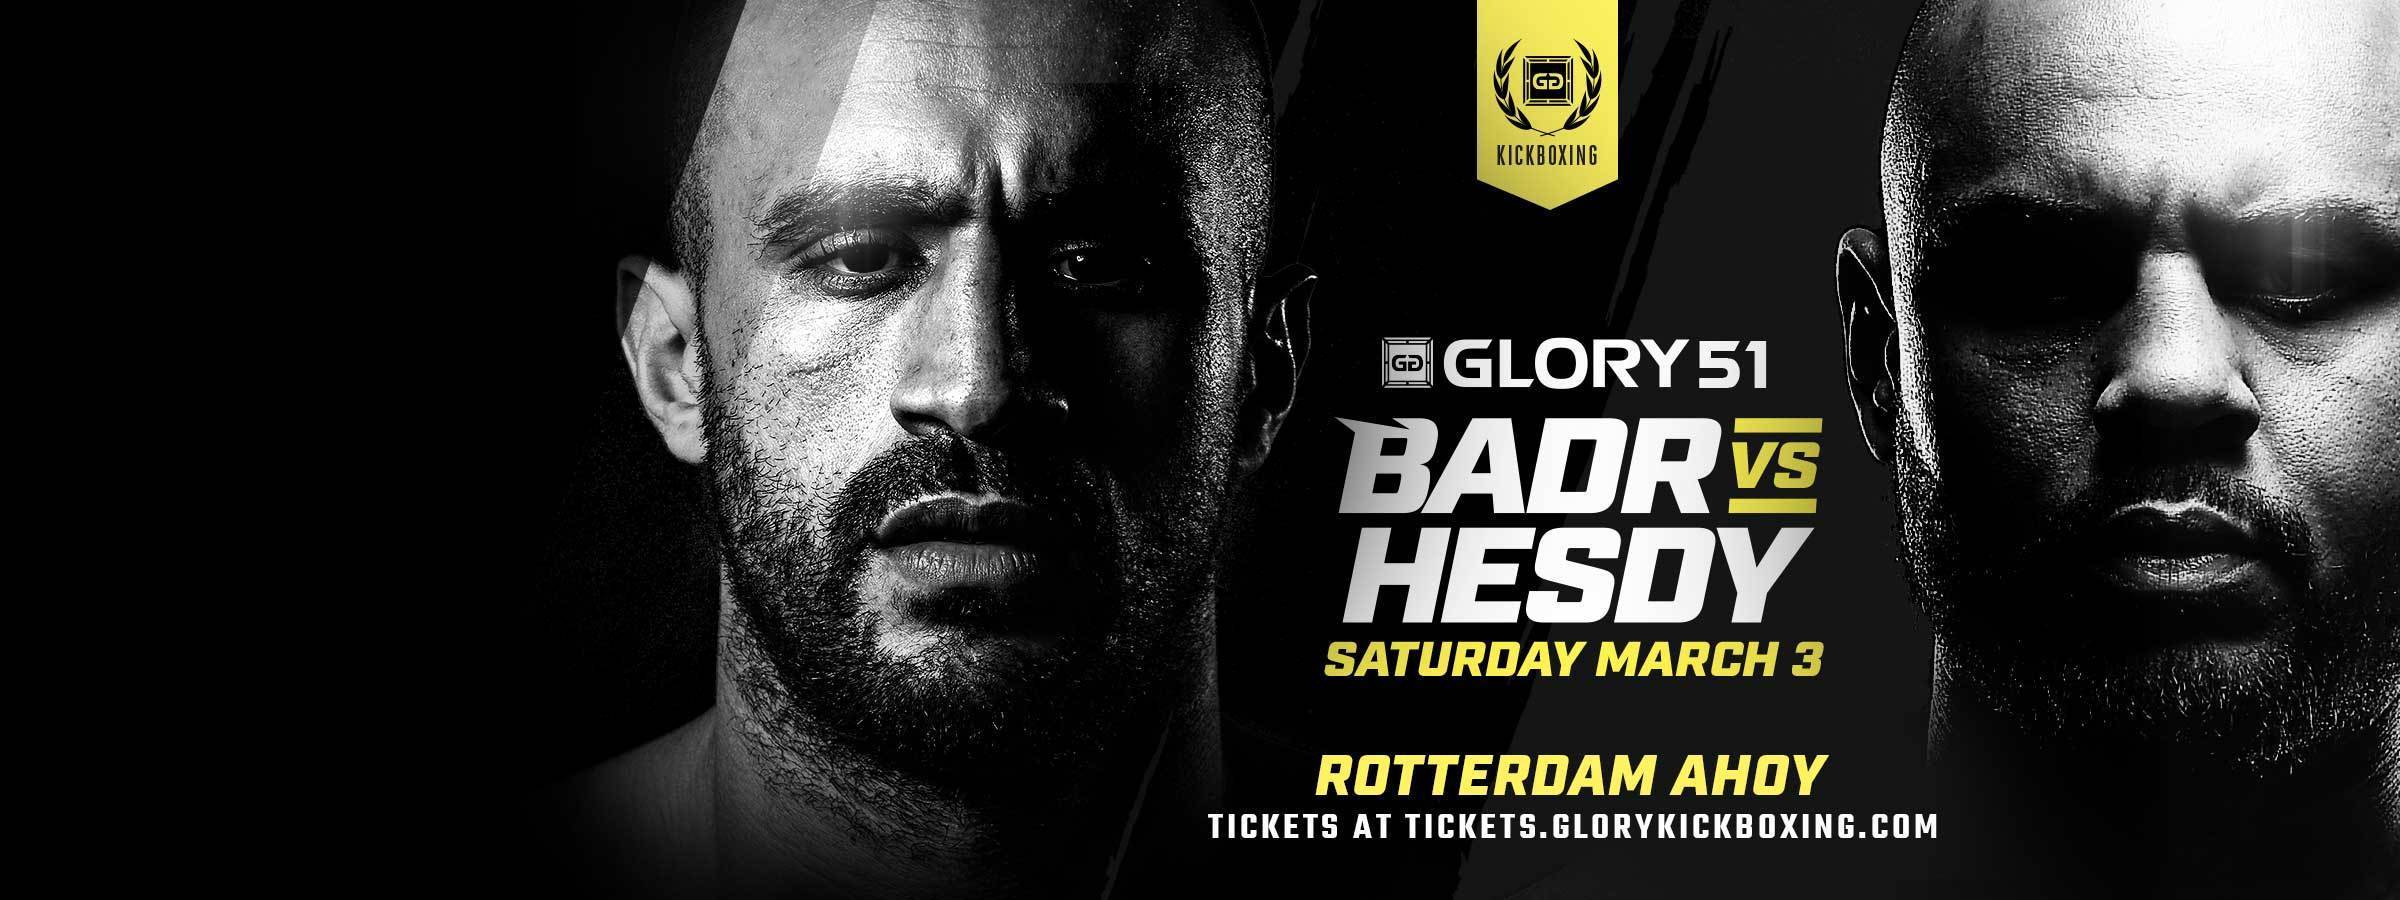 GLORY 51 tickets on sale now!